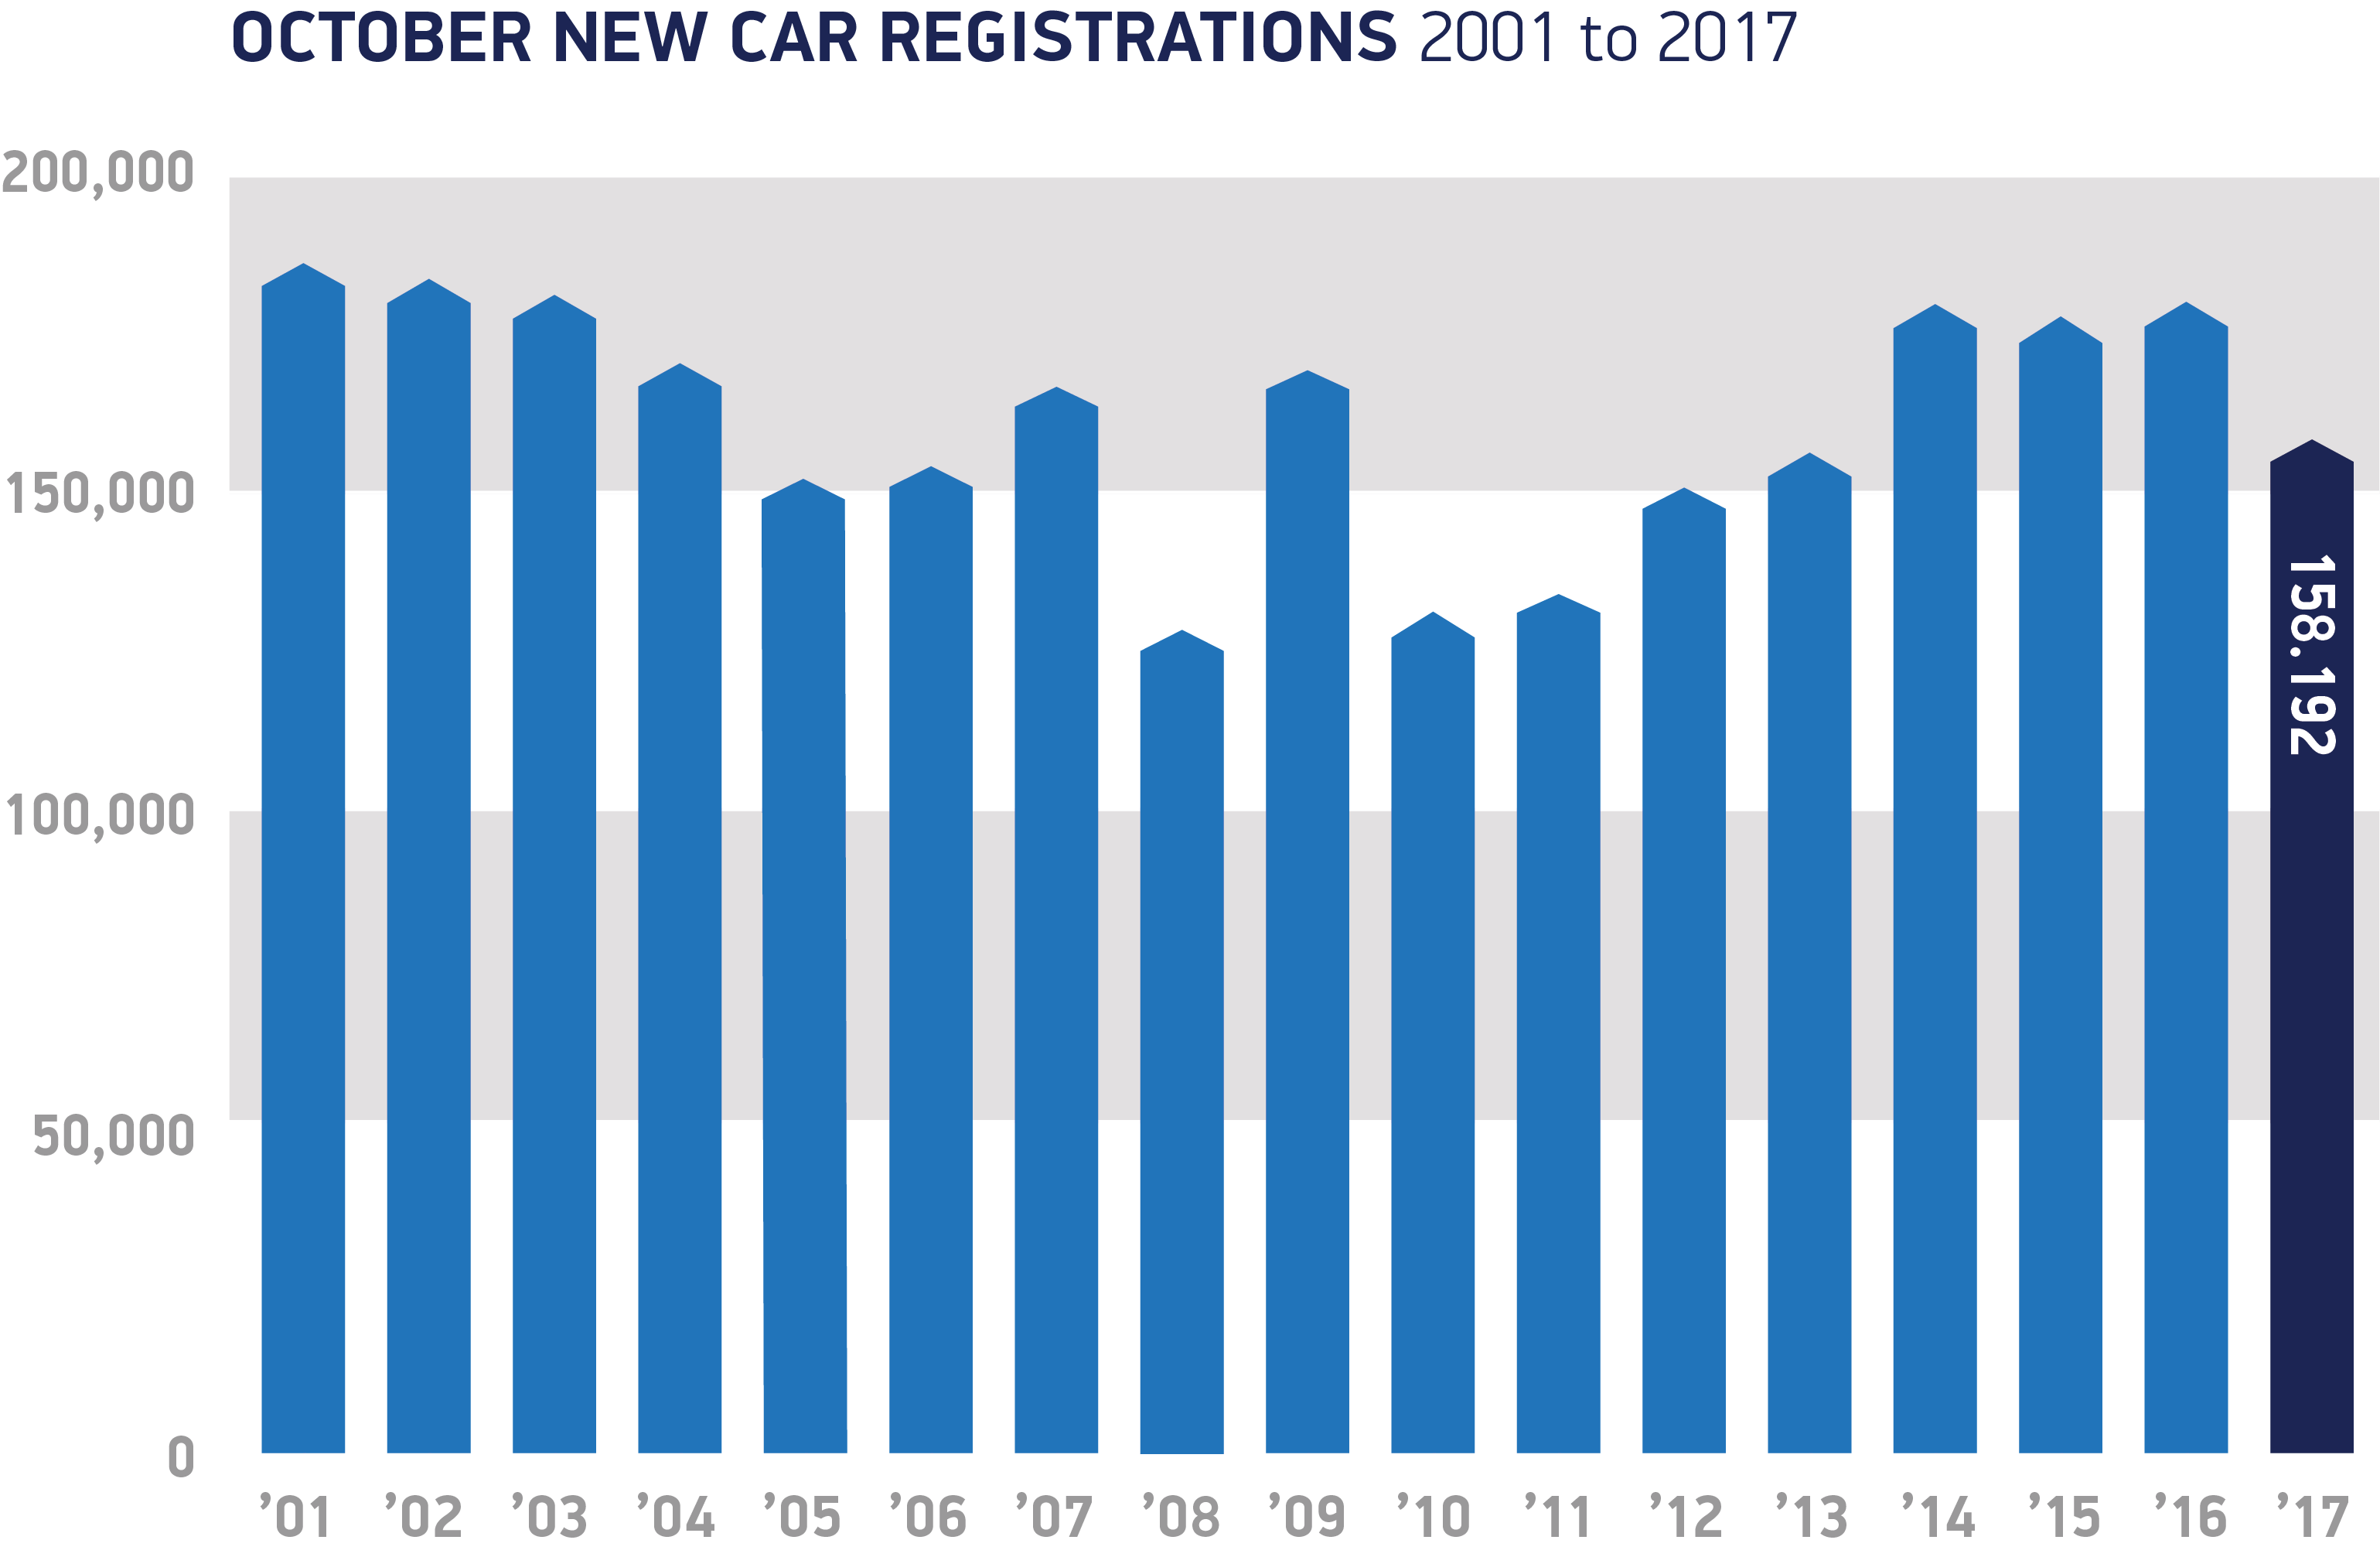 UK Car Sales Decline In October: SMMT